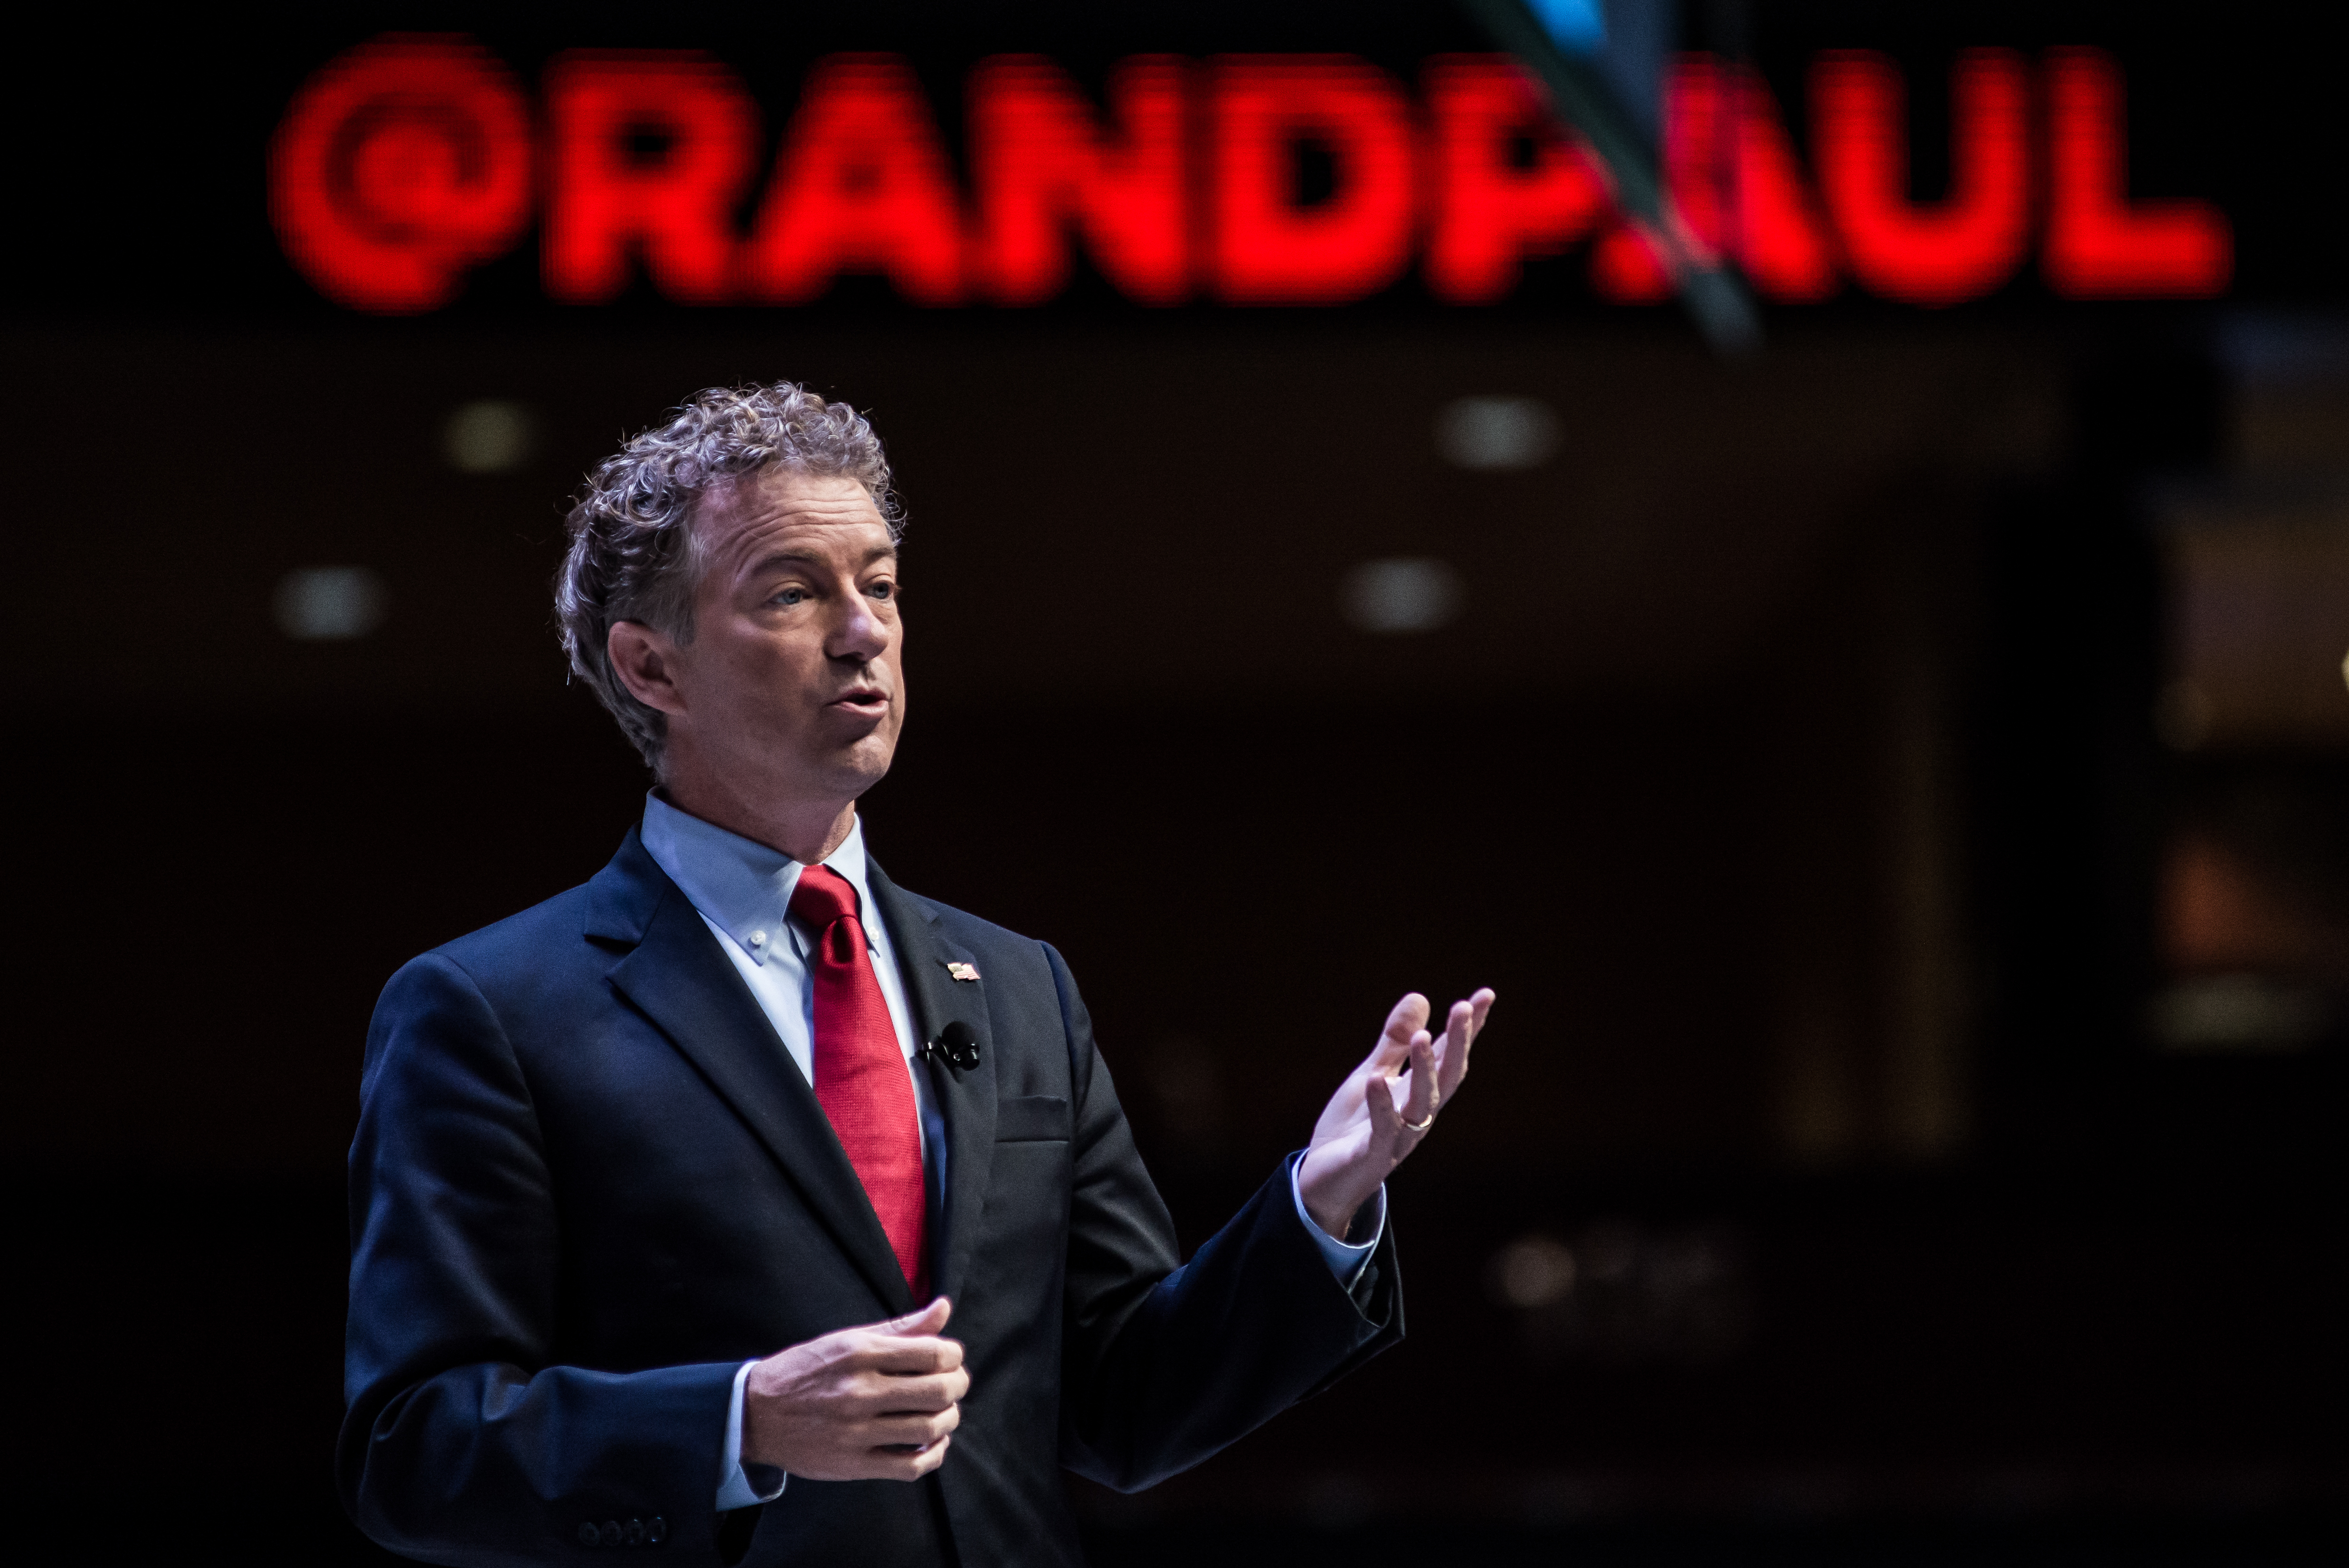 U.S. Sen. Rand Paul (R-KY) speaks to voters at the Heritage Action Presidential Candidate Forum in Greenville, S.C. on Sept. 18, 2015.